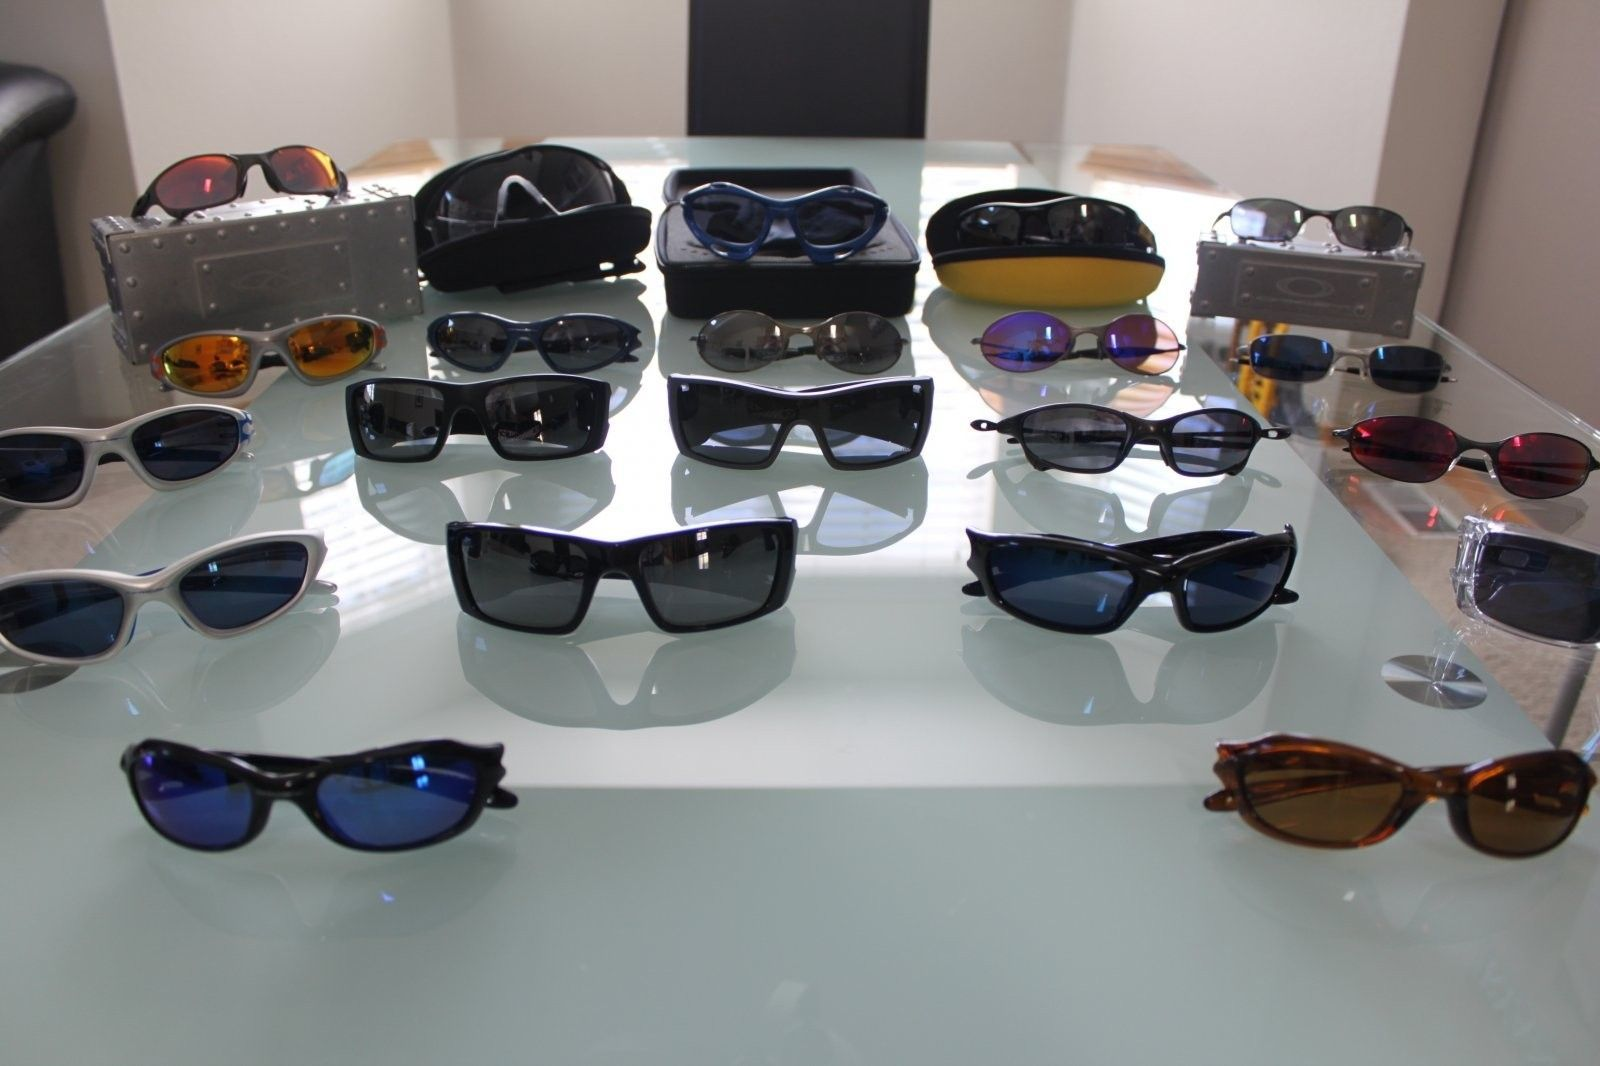 A Collection Built Over 13 Years - IMG_5582.JPG